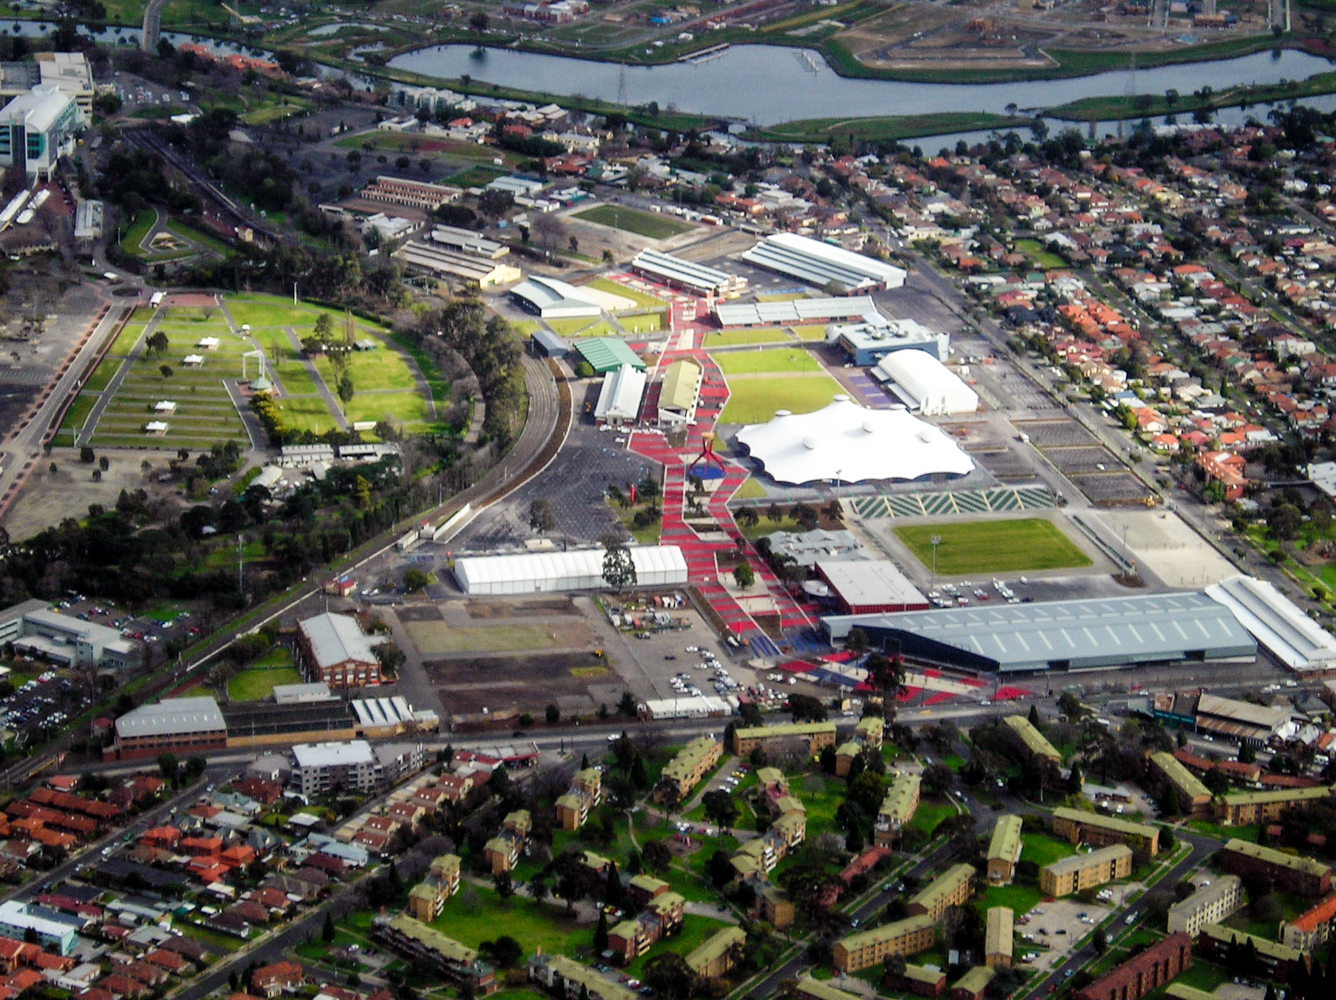 Aerial Photo's 1 Aug 06 Showgrounds a.jpg